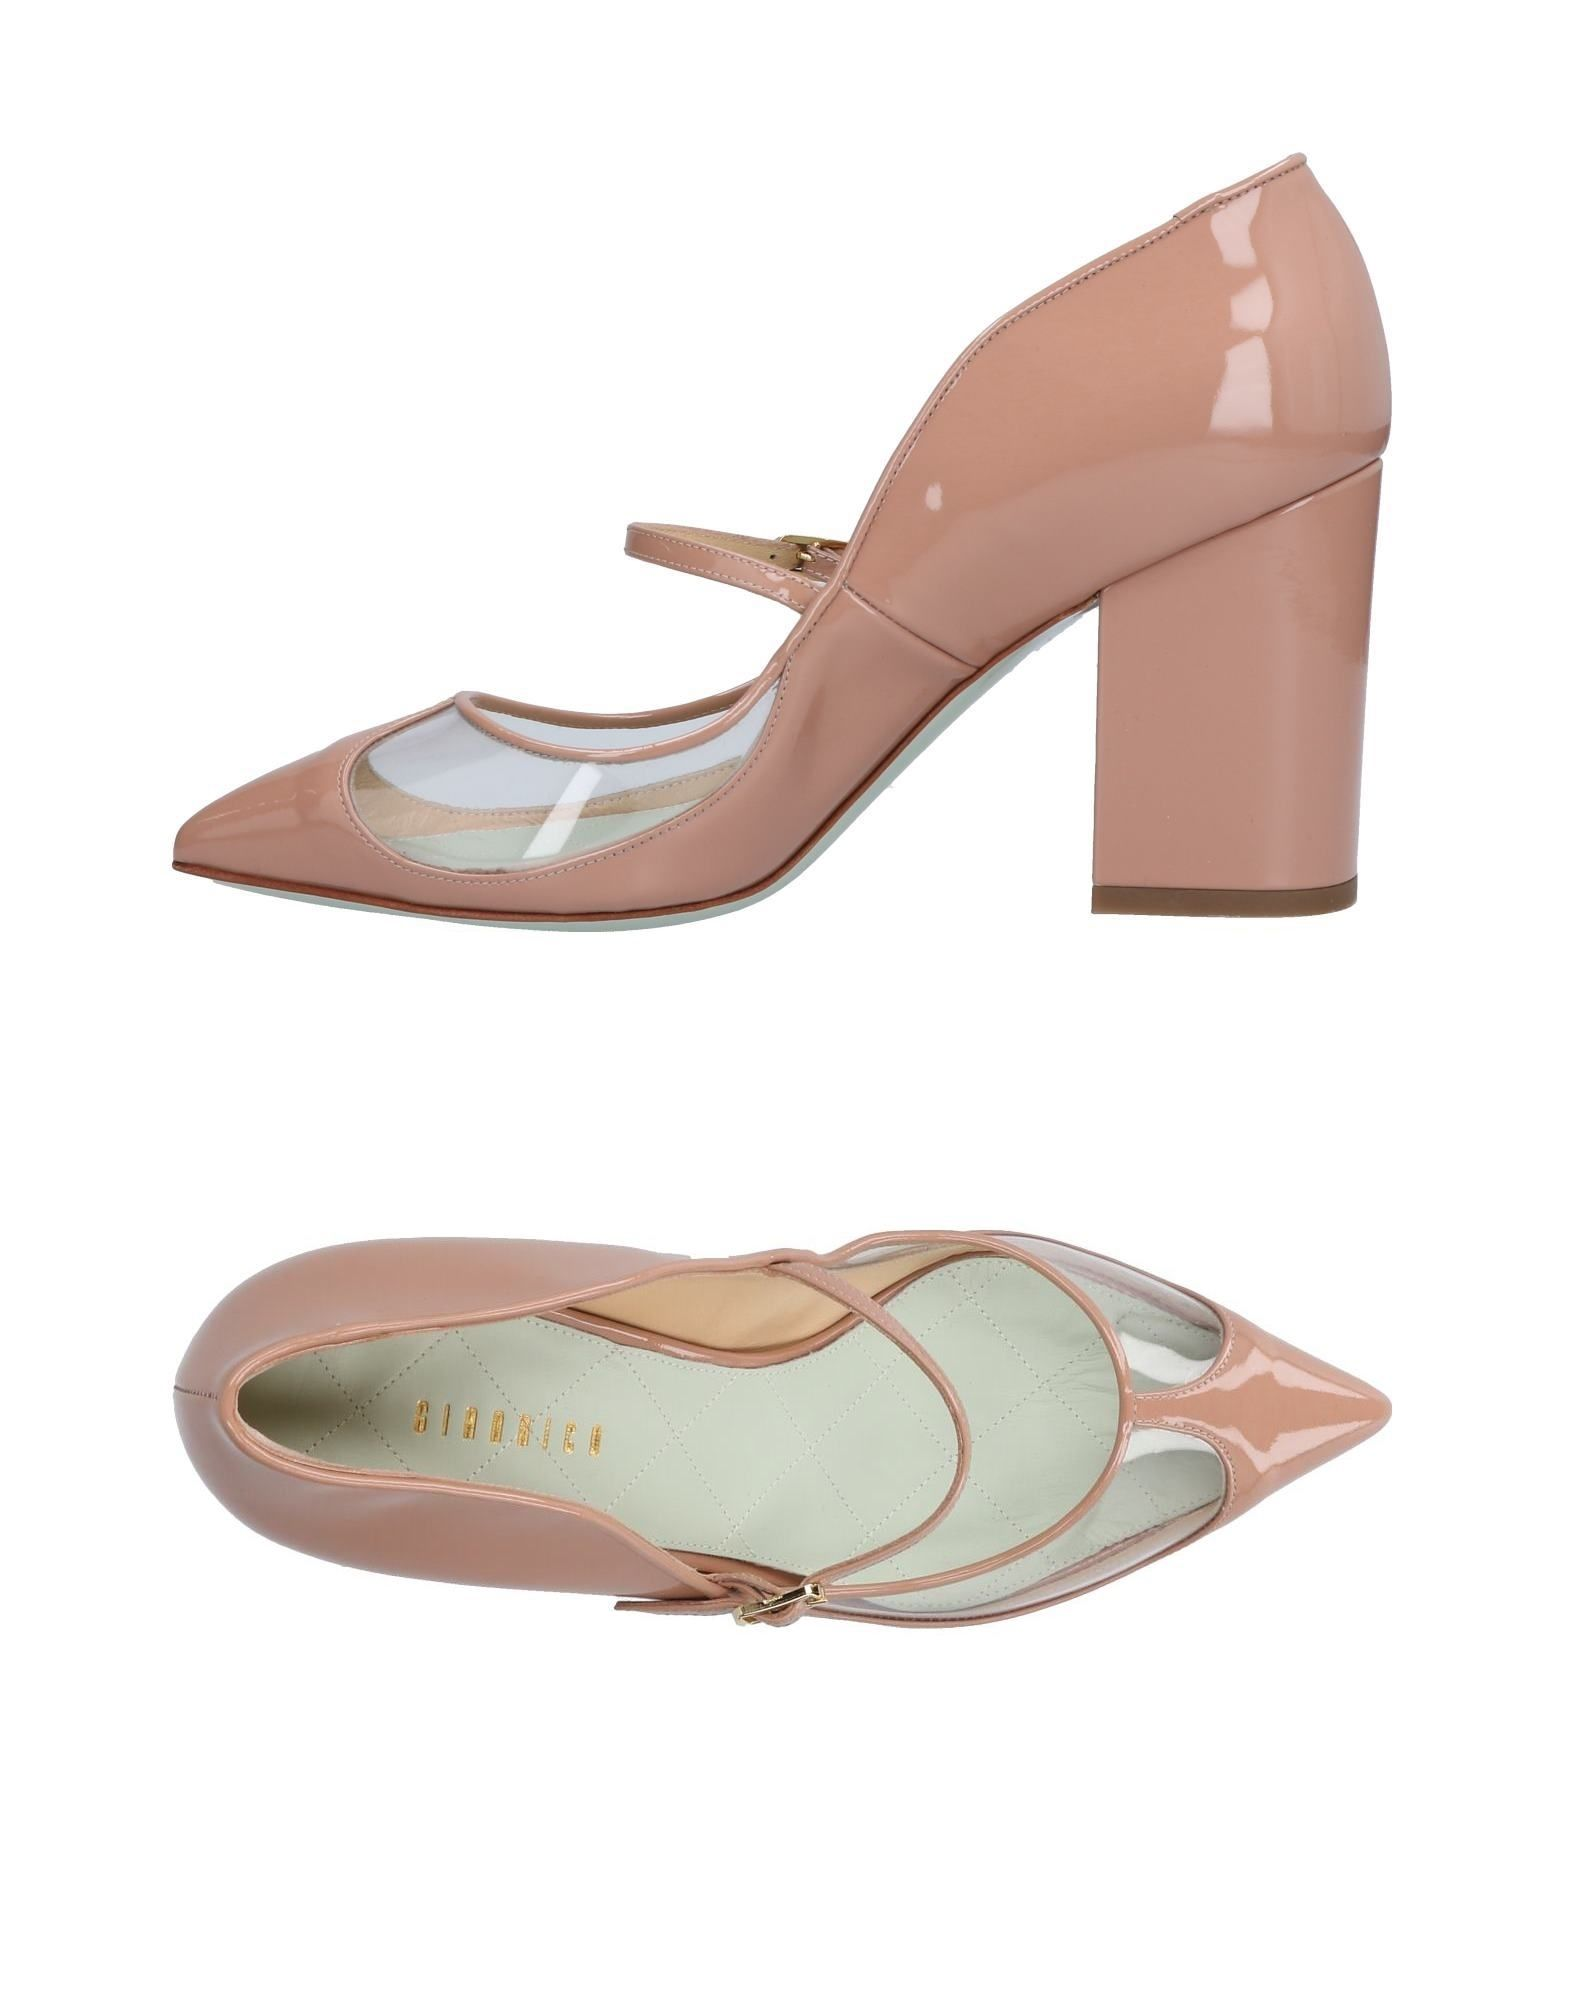 GIANNICO Pump in Pale Pink